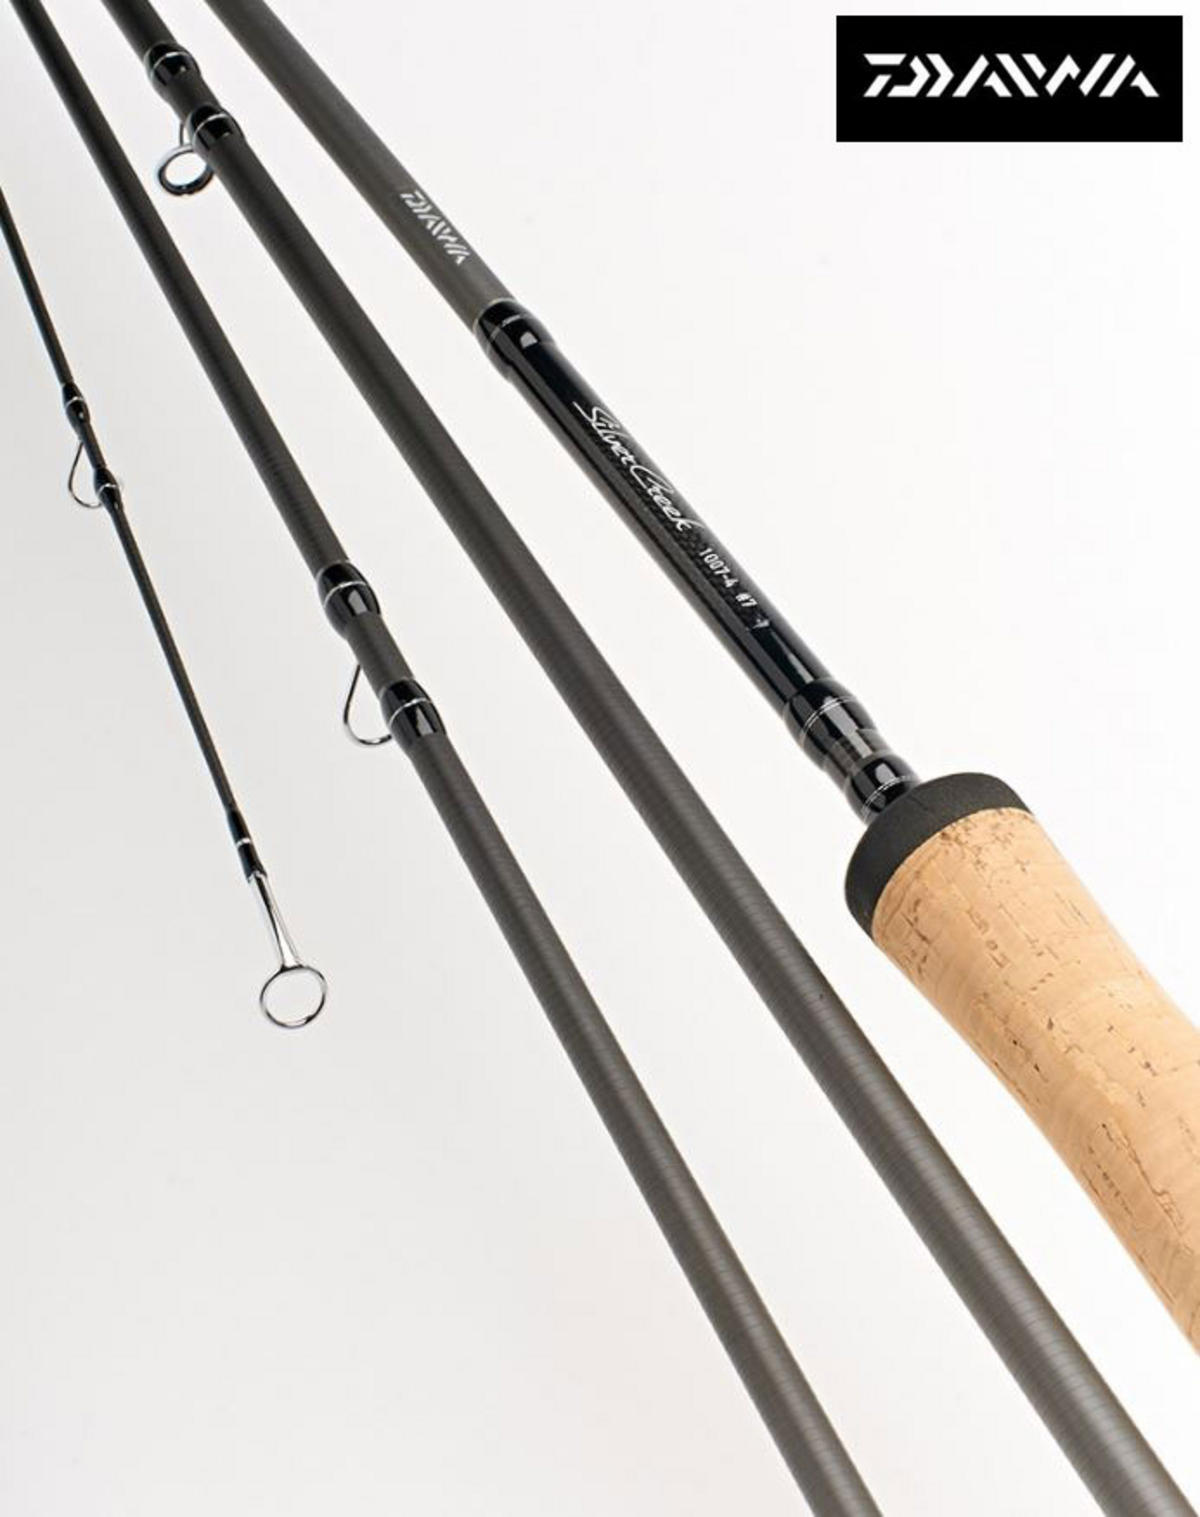 New Daiwa Silvercreek Fly Fishing Rods - All Models Available